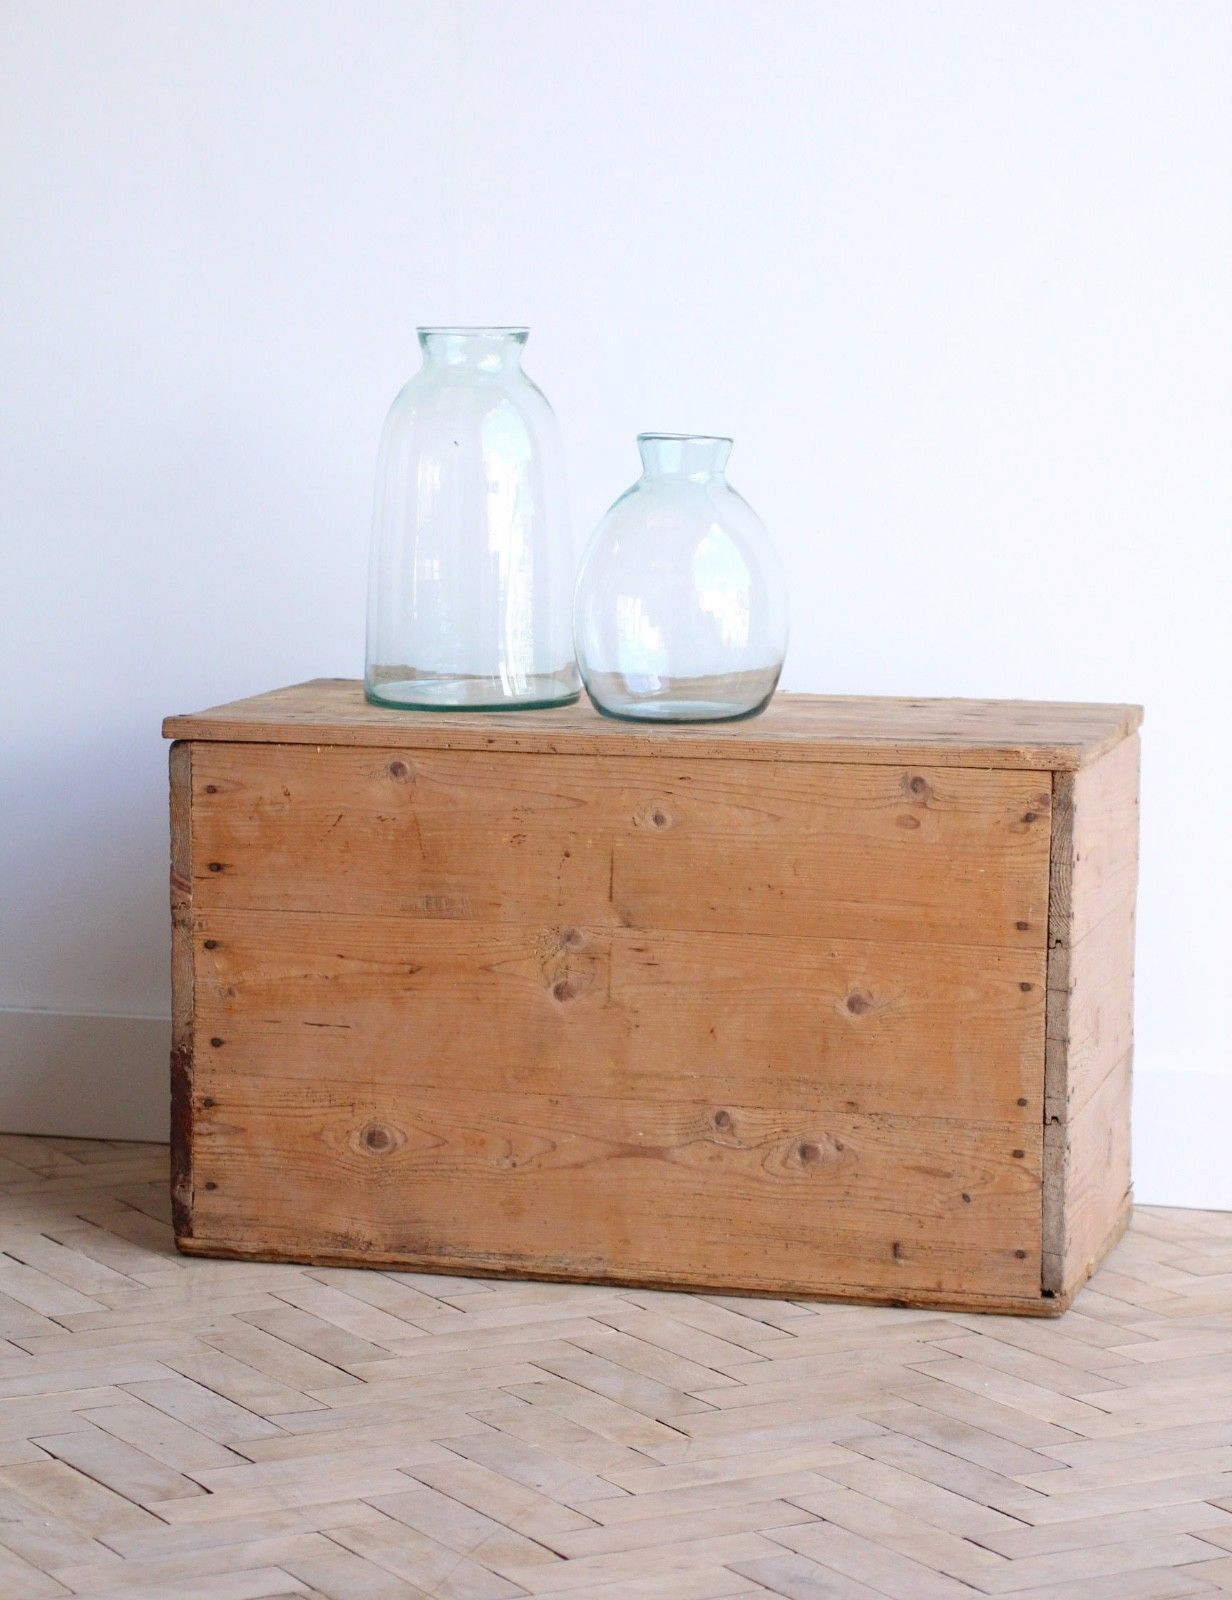 vintage-rustic-wooden-pine-trunk-box